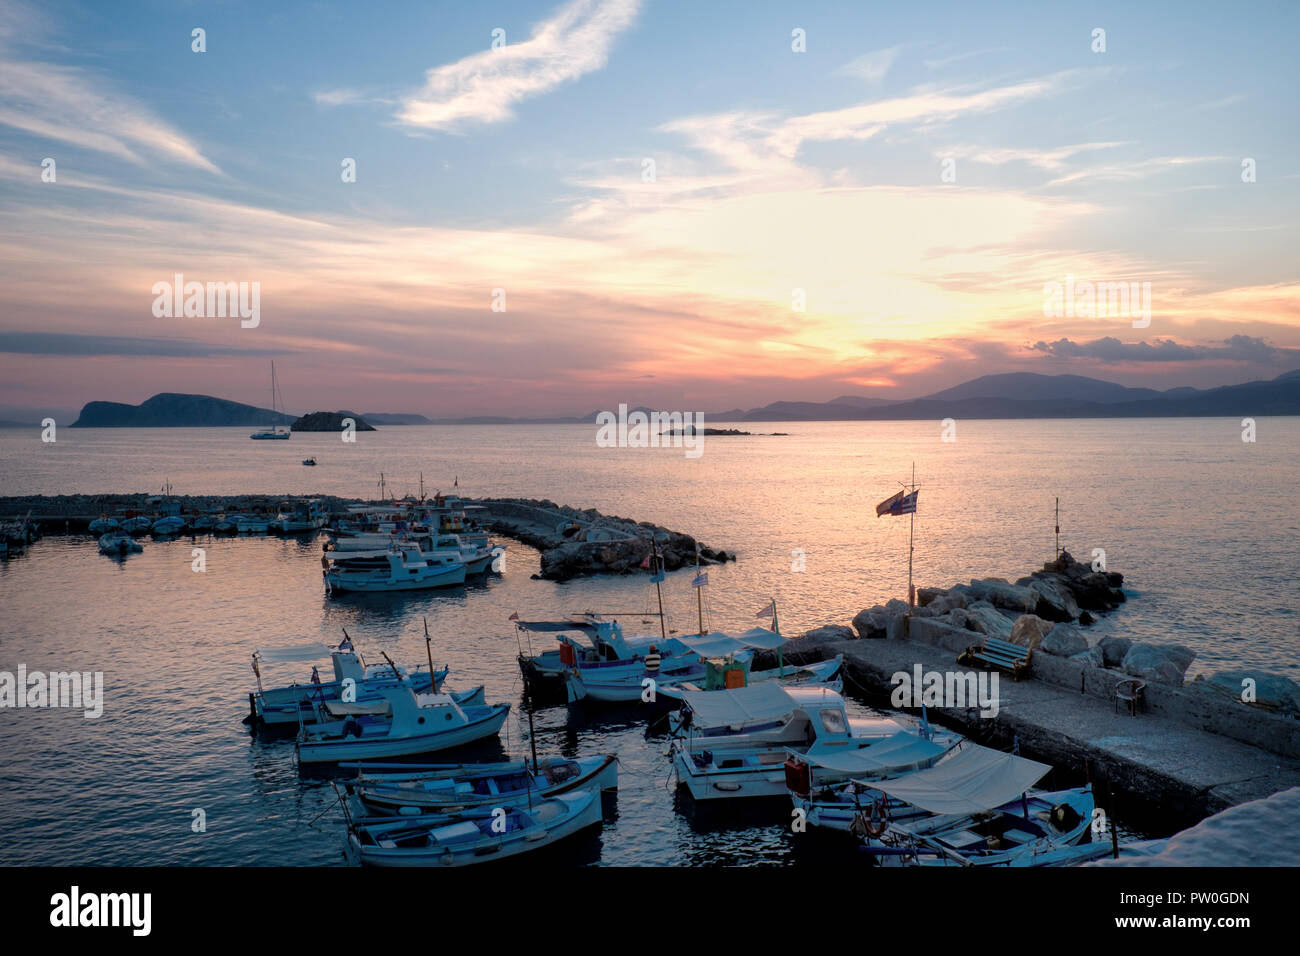 Sunset over Kaminia beach, Hydra (Ydhra) in the greek Argo-Saronic islands. - Stock Image